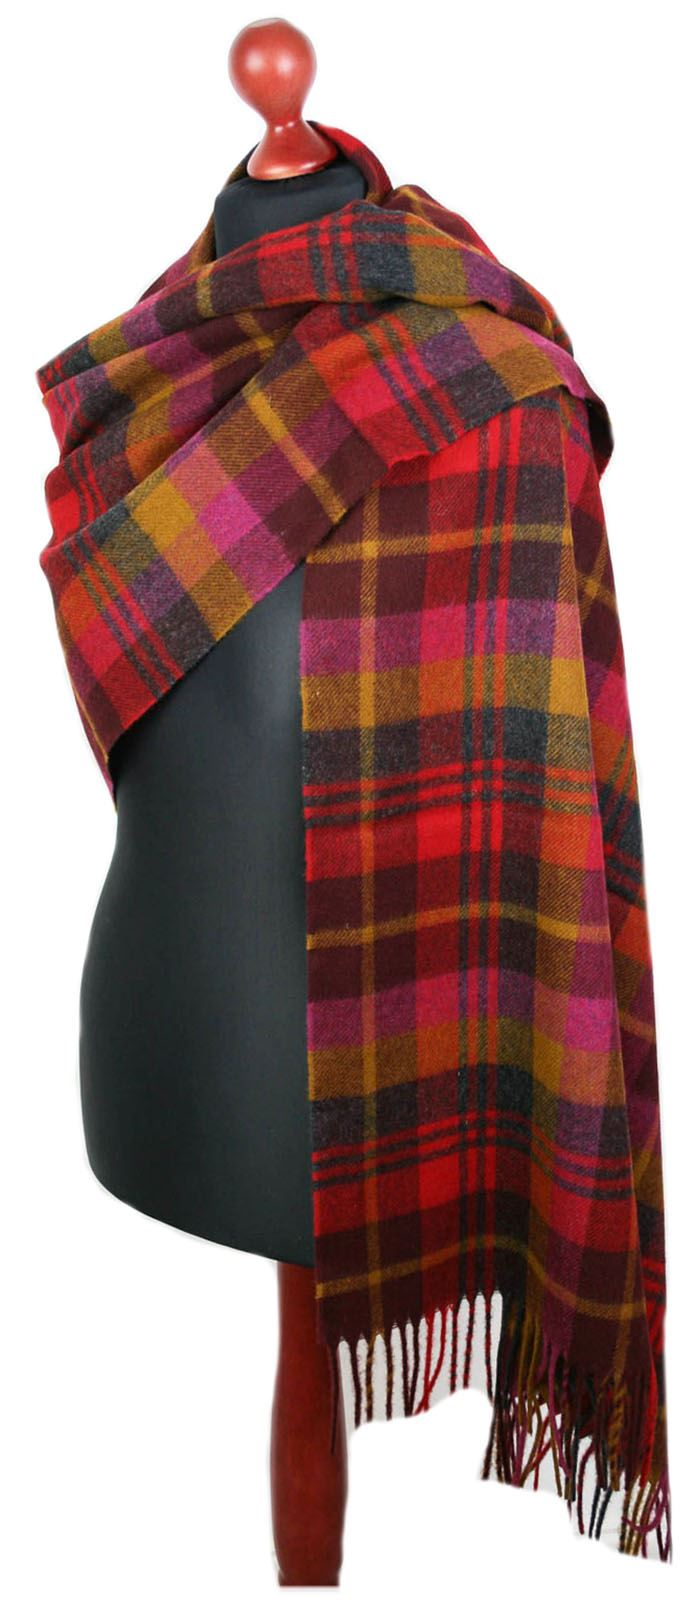 Bronte 100/% Merino Lambswool Check Stole Wide Scarf Shawl Wrap British made gift